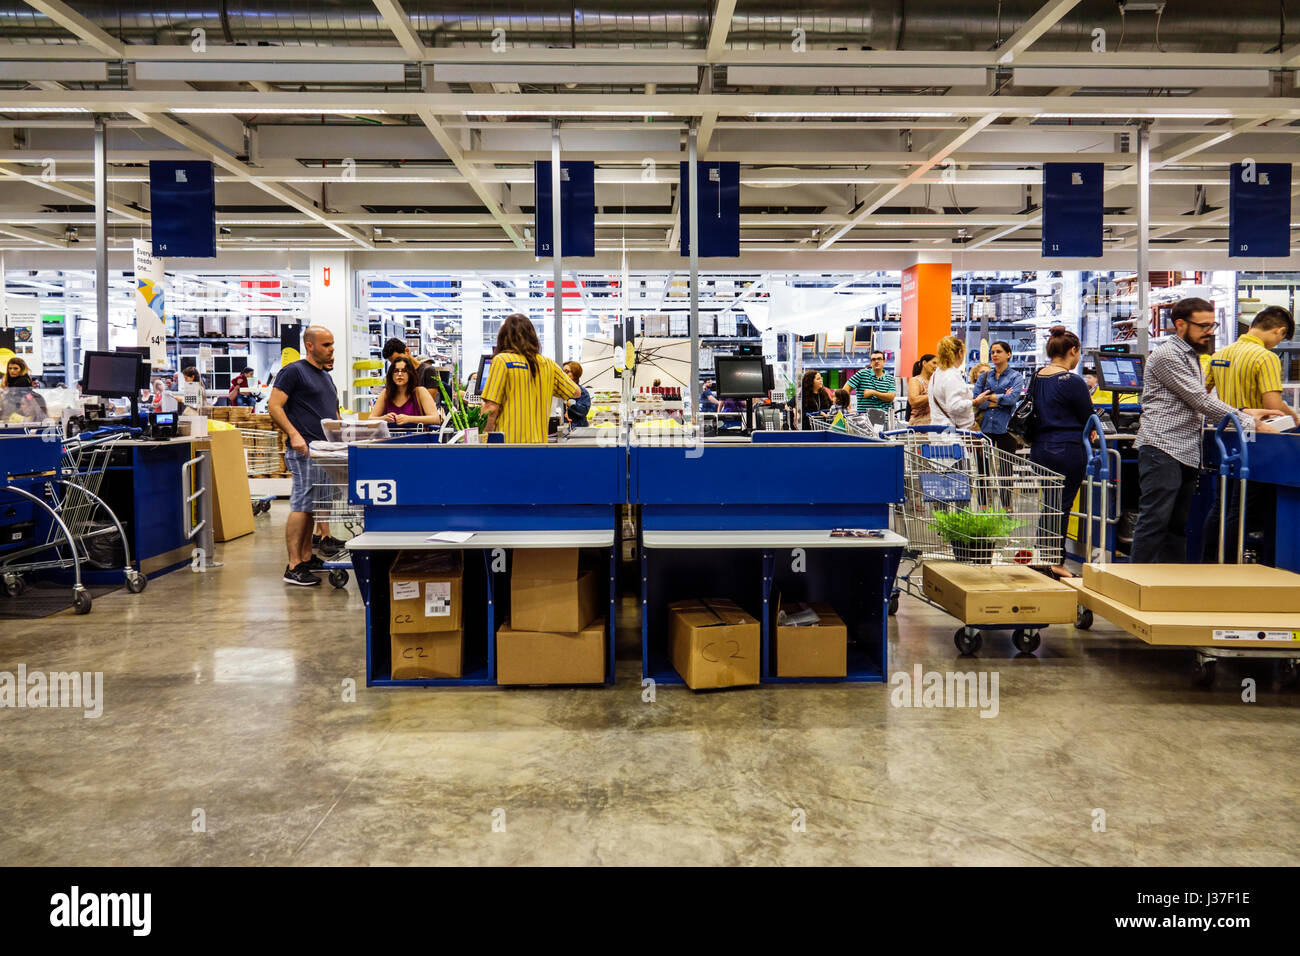 Miami florida ikea store retailer furniture home for Ikea store online shopping